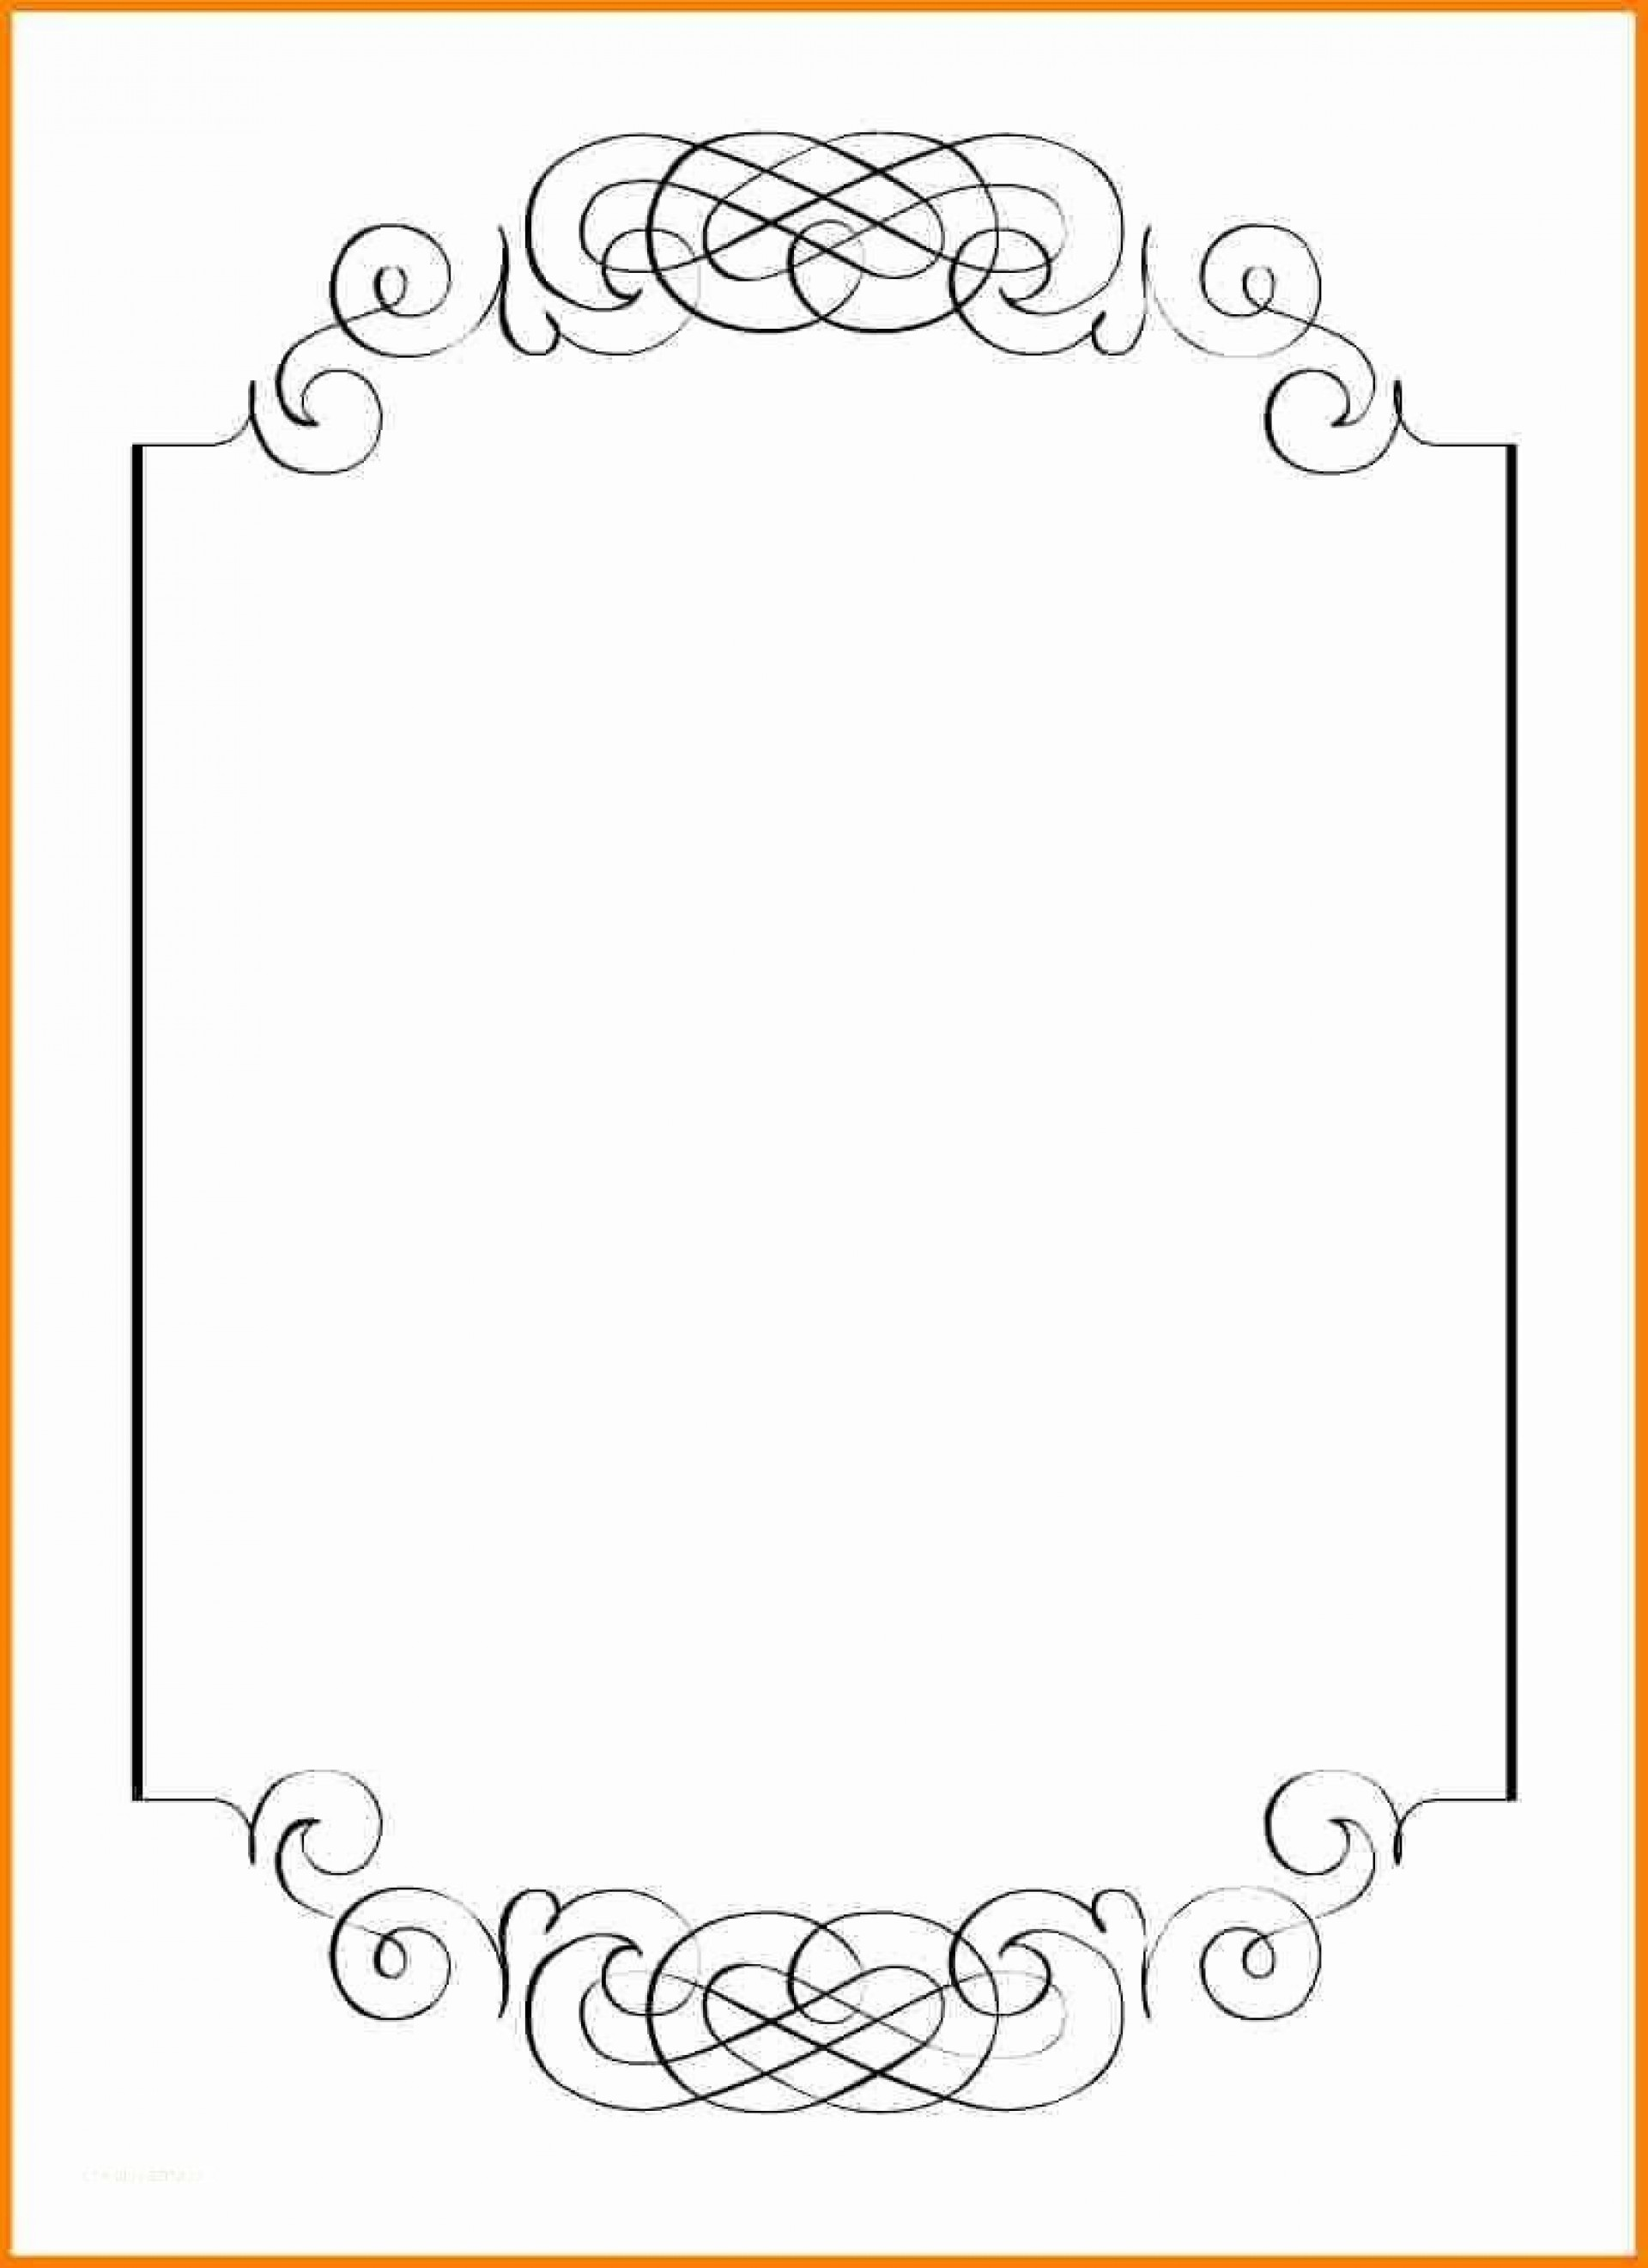 000 Rare Blank Birthday Invitation Template For Microsoft Word Photo 1920